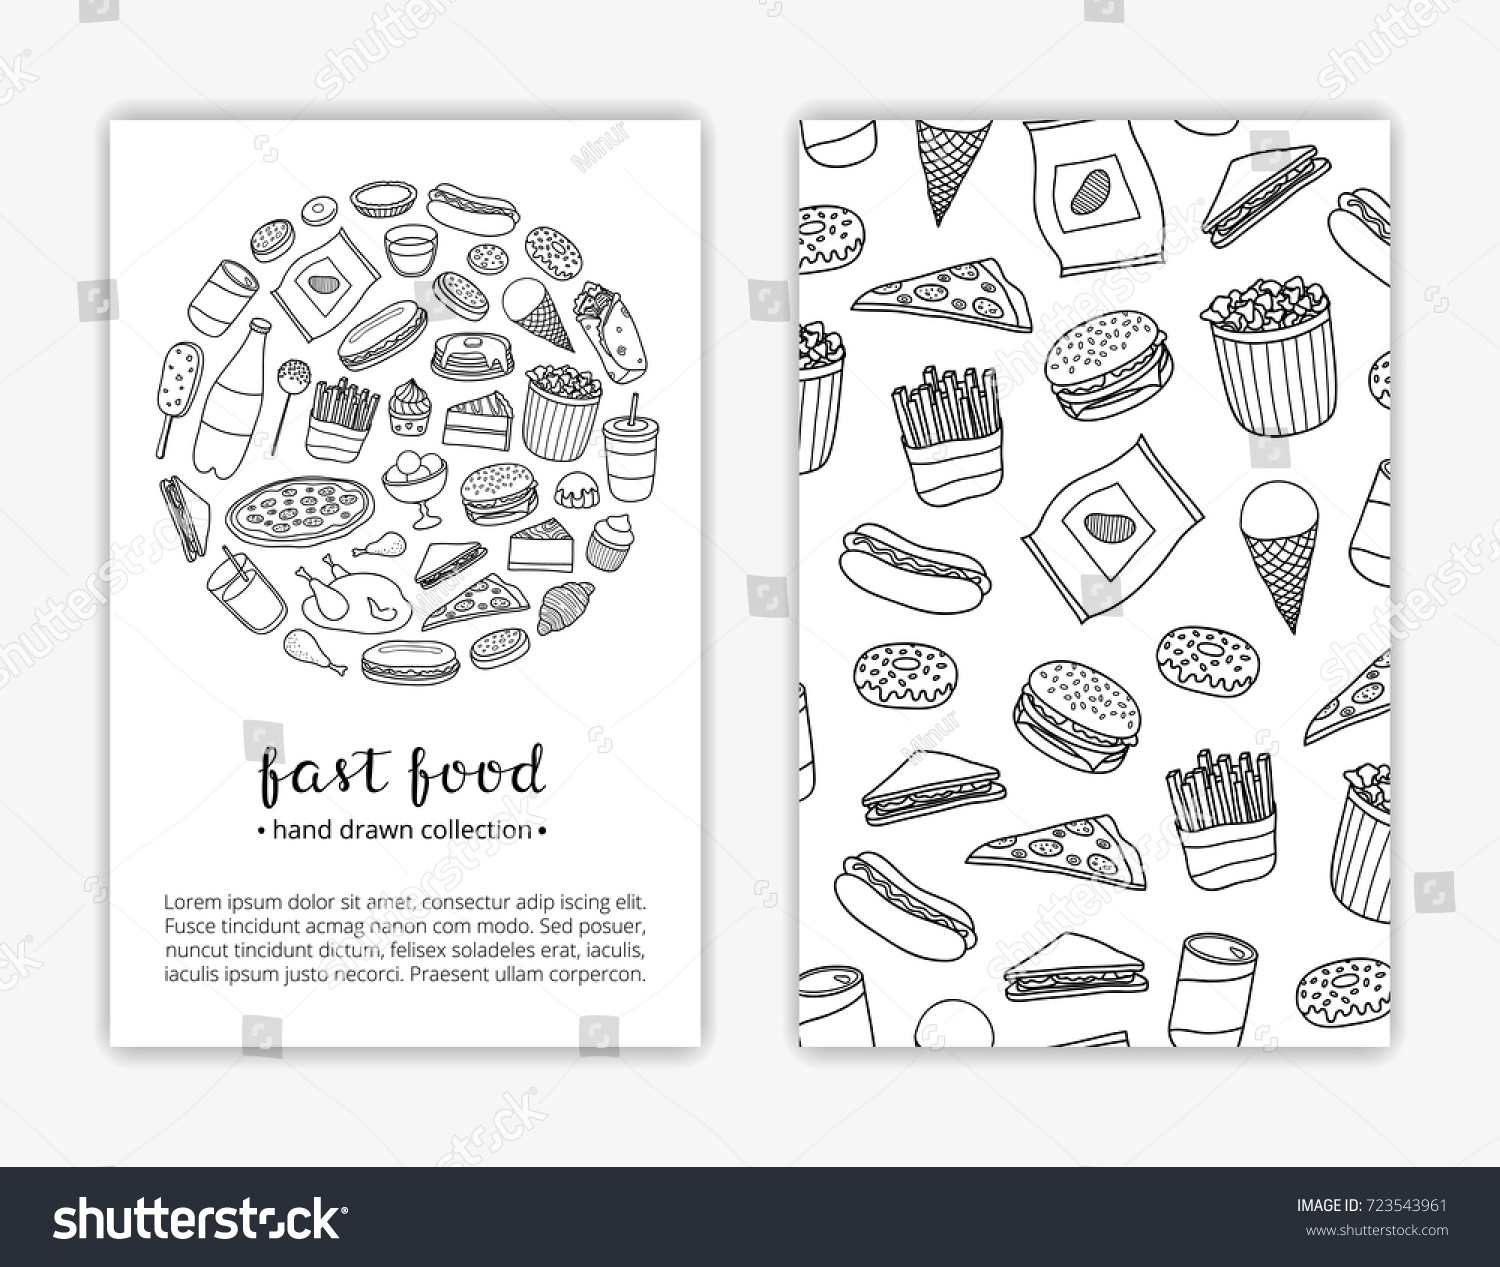 Card Templates Doodle Outline Fast Food Stock Vector (Royalty Free ...